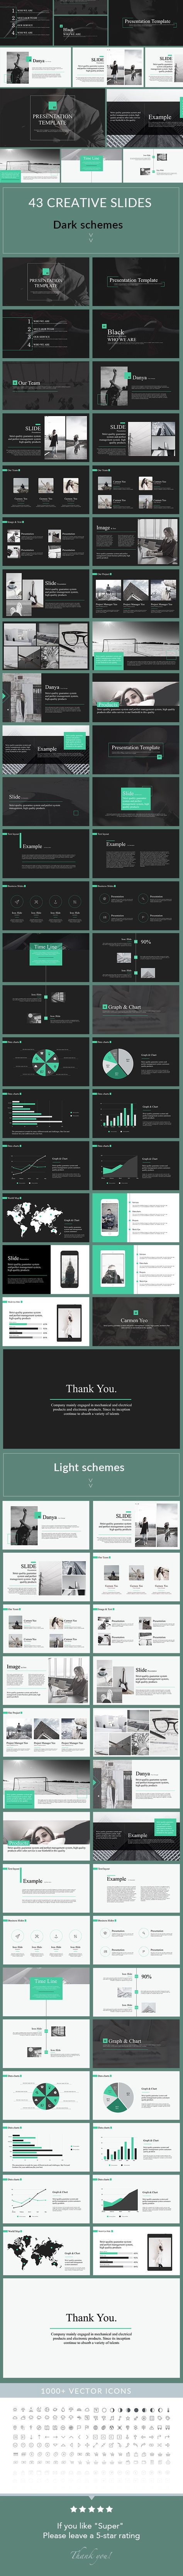 Mark - Clean & Simple Keynote Template. Download here: <a href ...